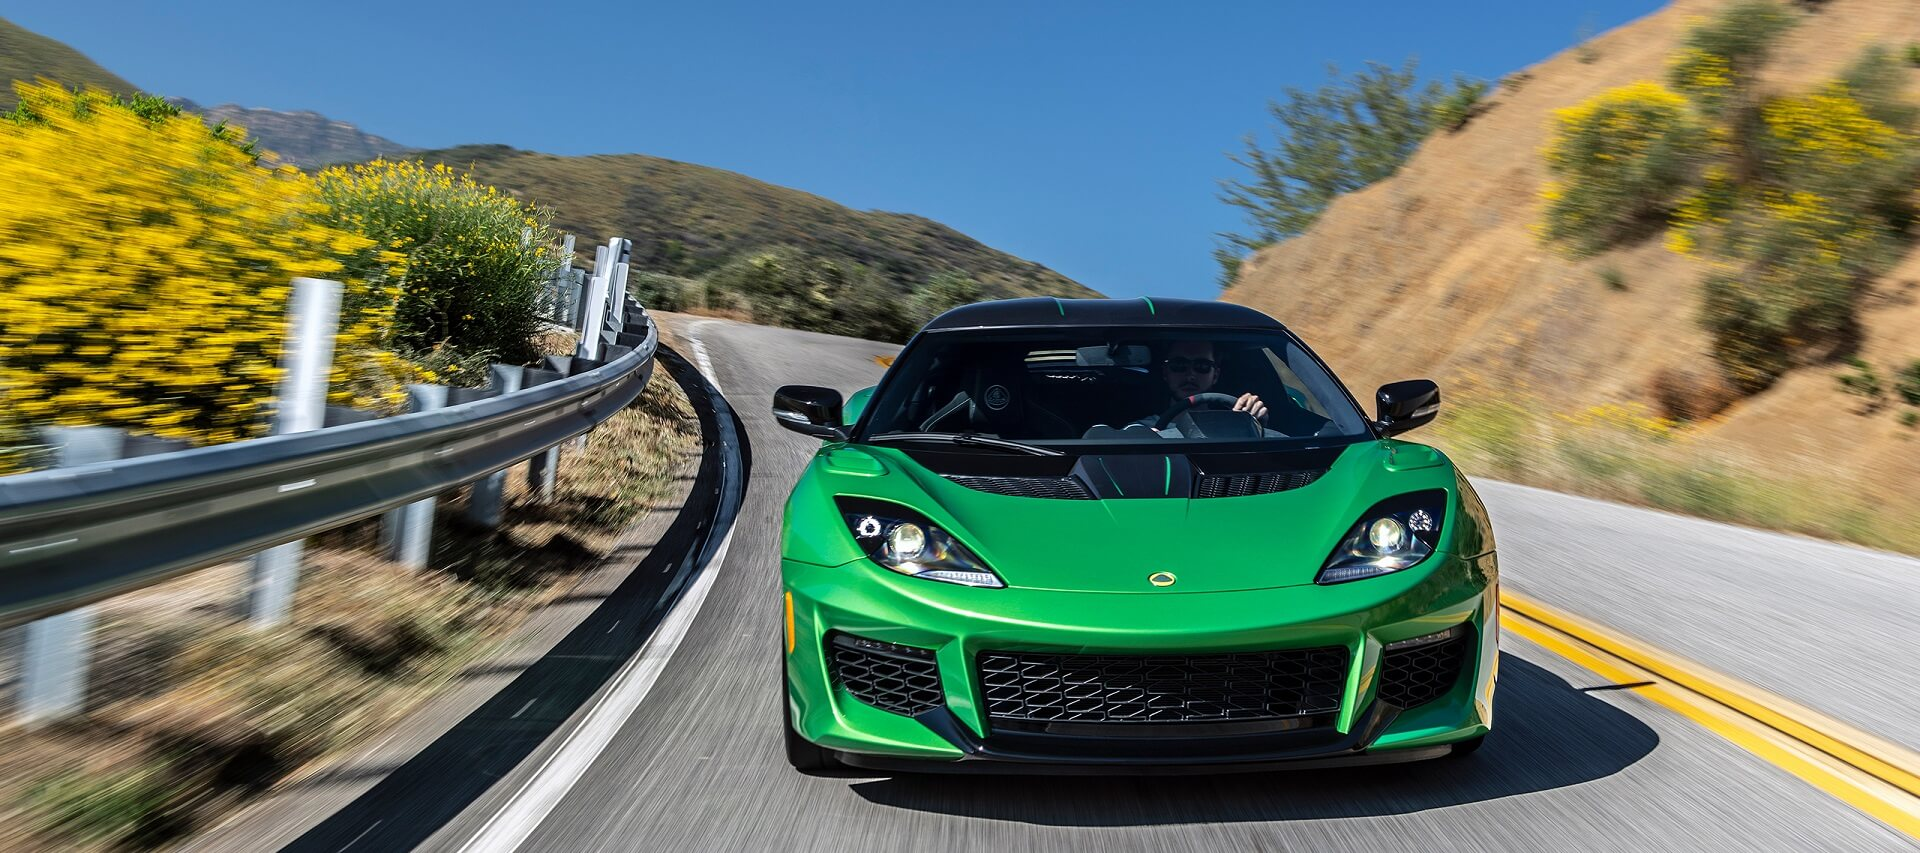 Lotus News: 2020 Lotus Evora GT First Drive